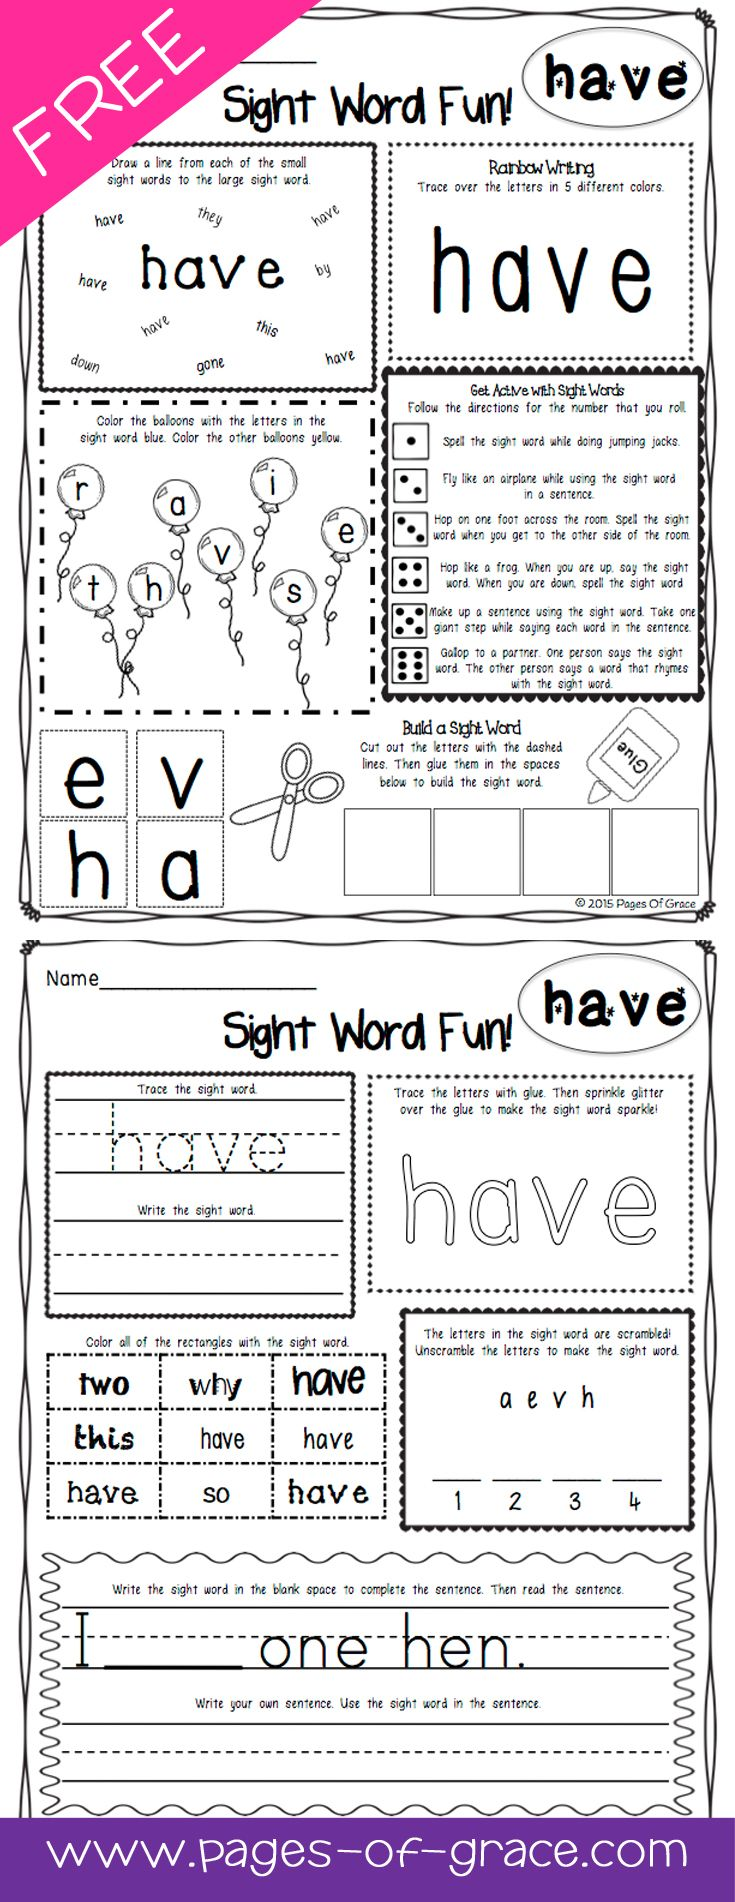 Worksheet Free Sight Words Printables best 25 sight word worksheets ideas on pinterest are you looking for some fun and activities teaching words this free